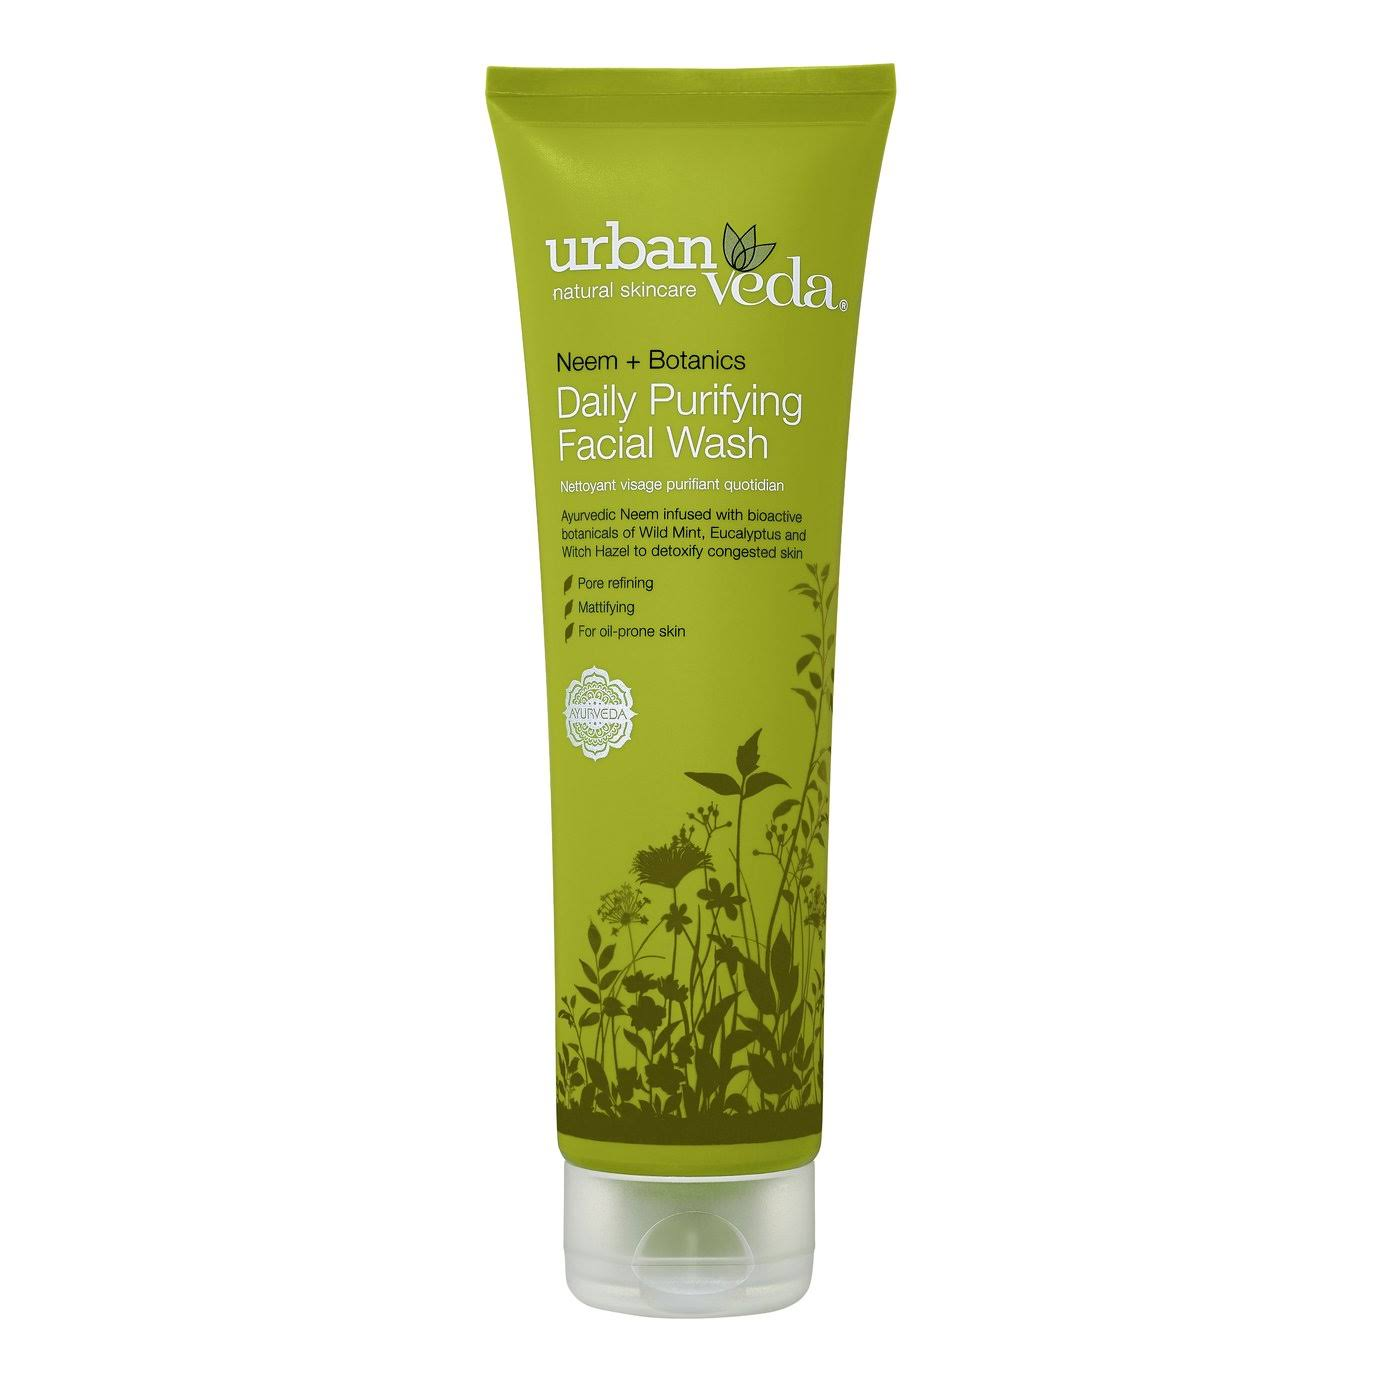 Urban Veda Daily Purifying Facial Wash - Neem Plus Botanics, 150ml